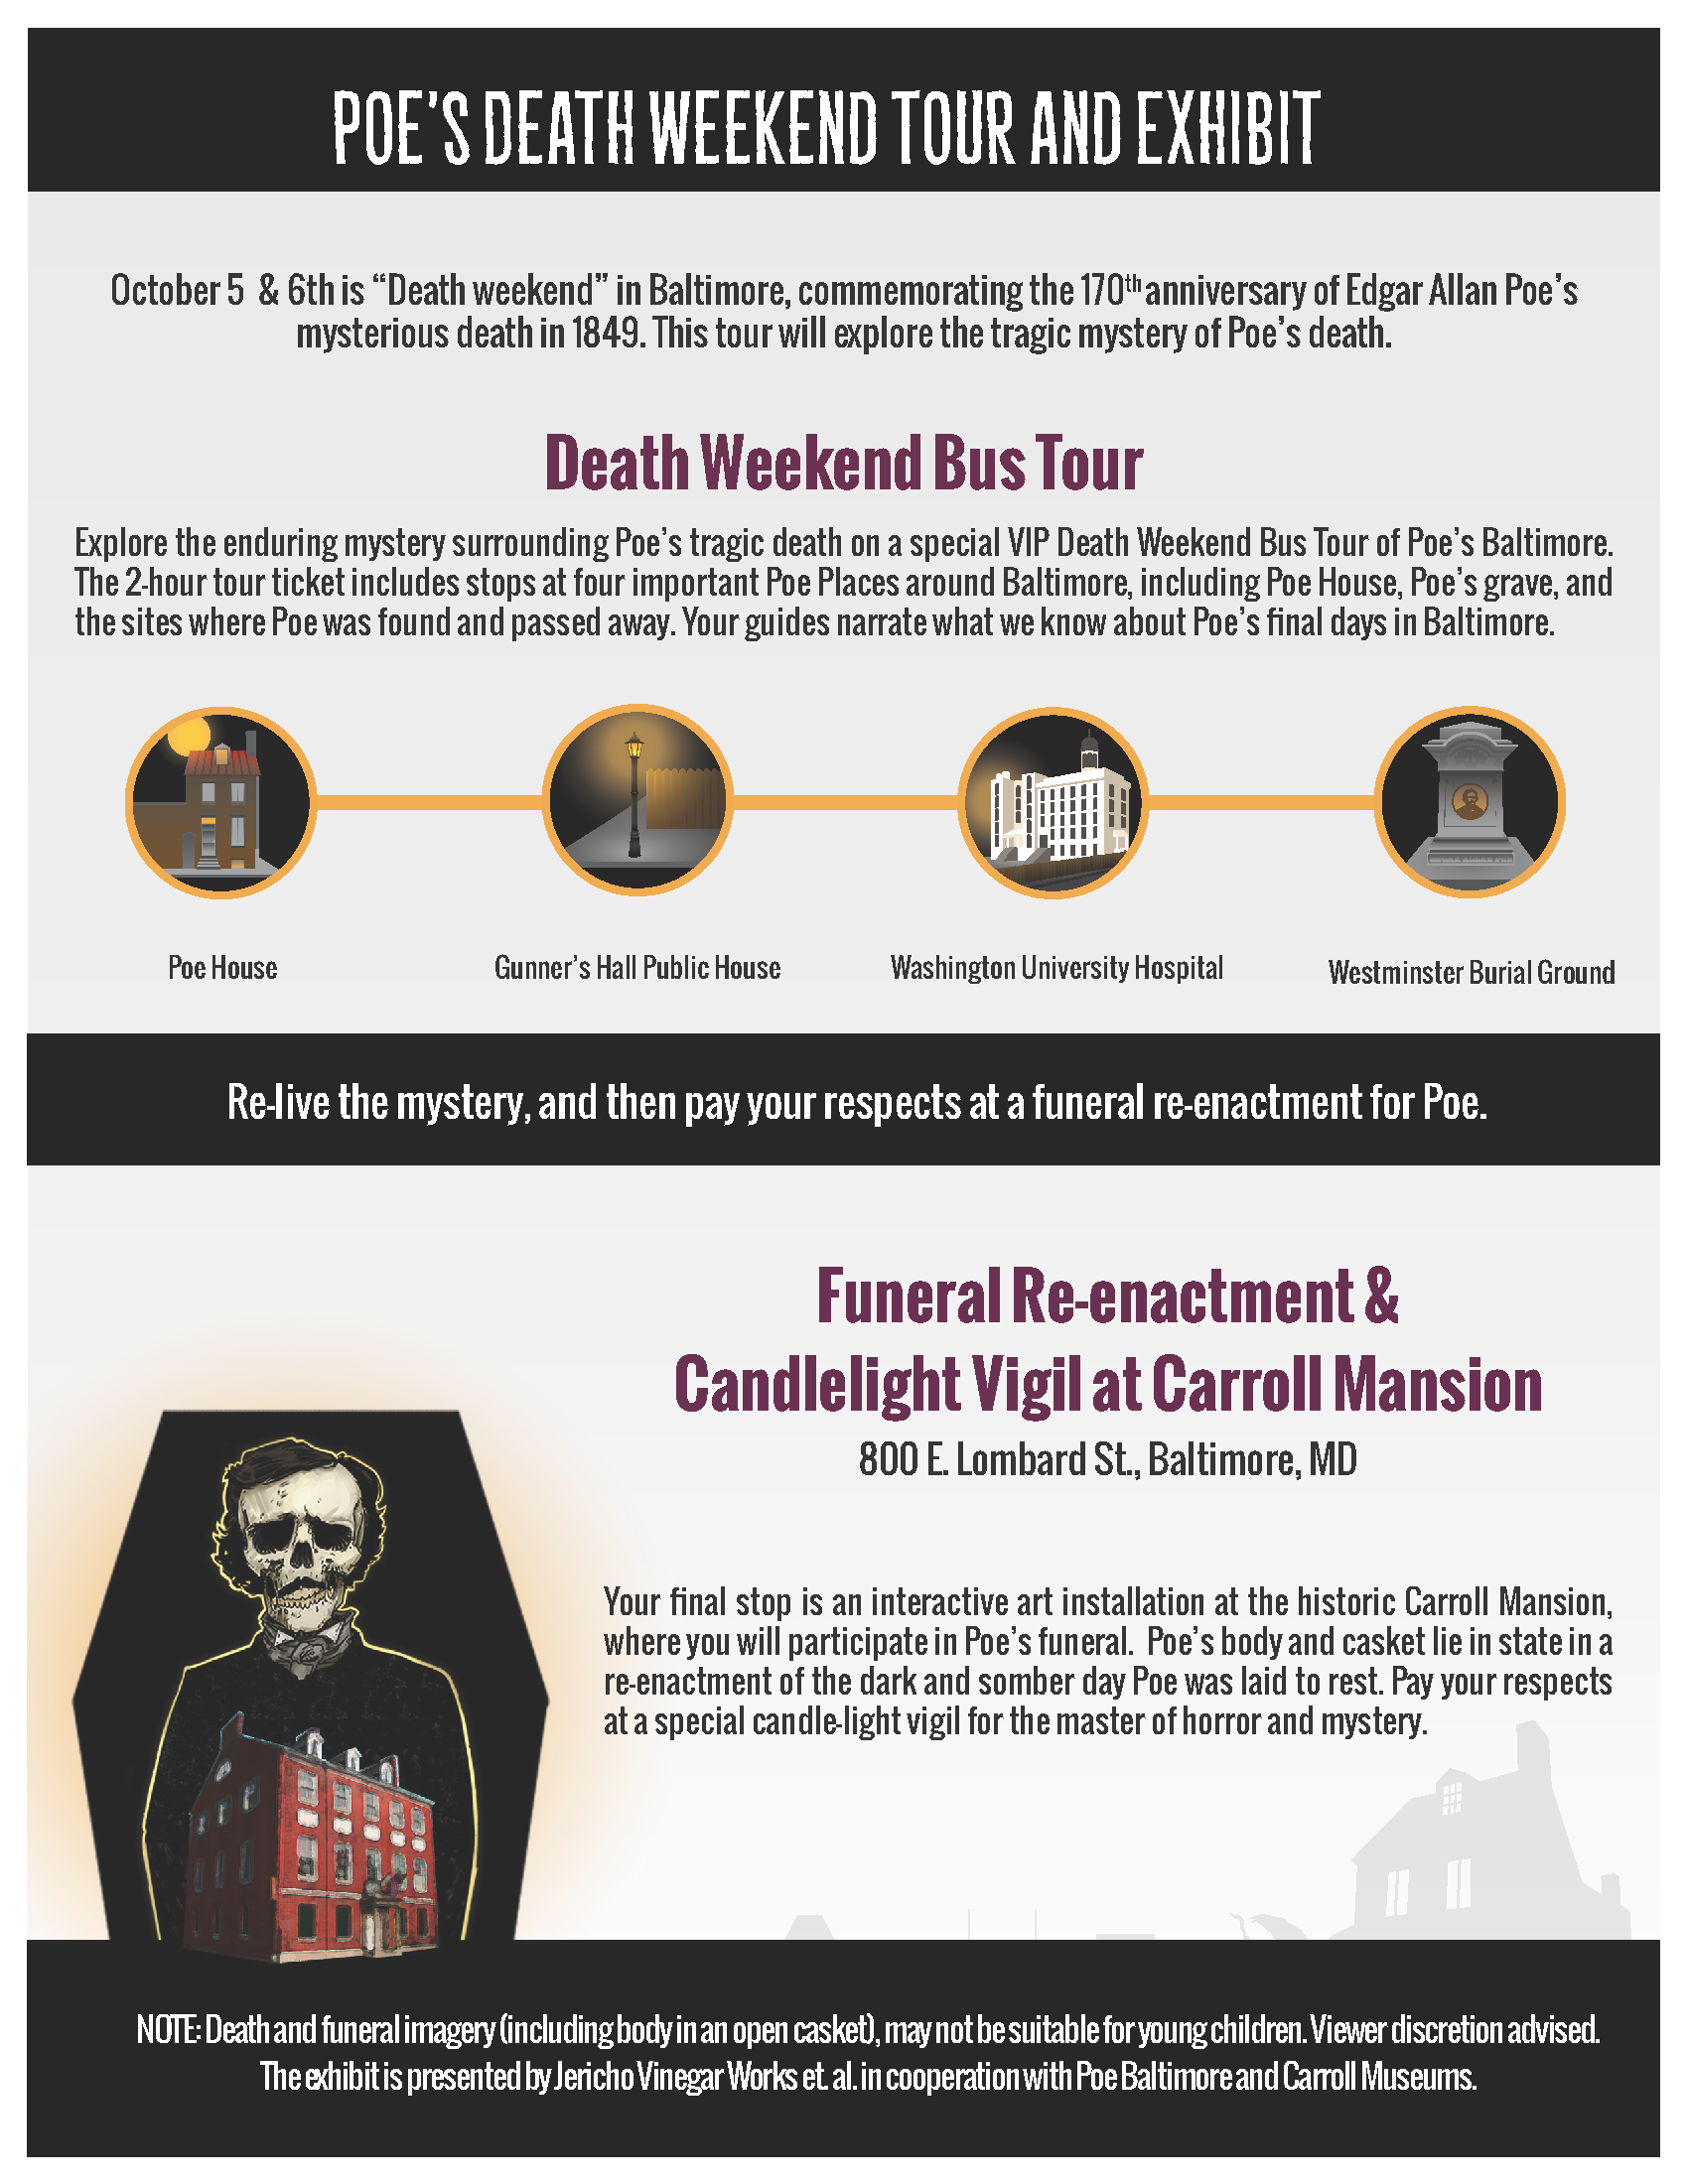 Poe Death Tour and Funeral Re-enactment